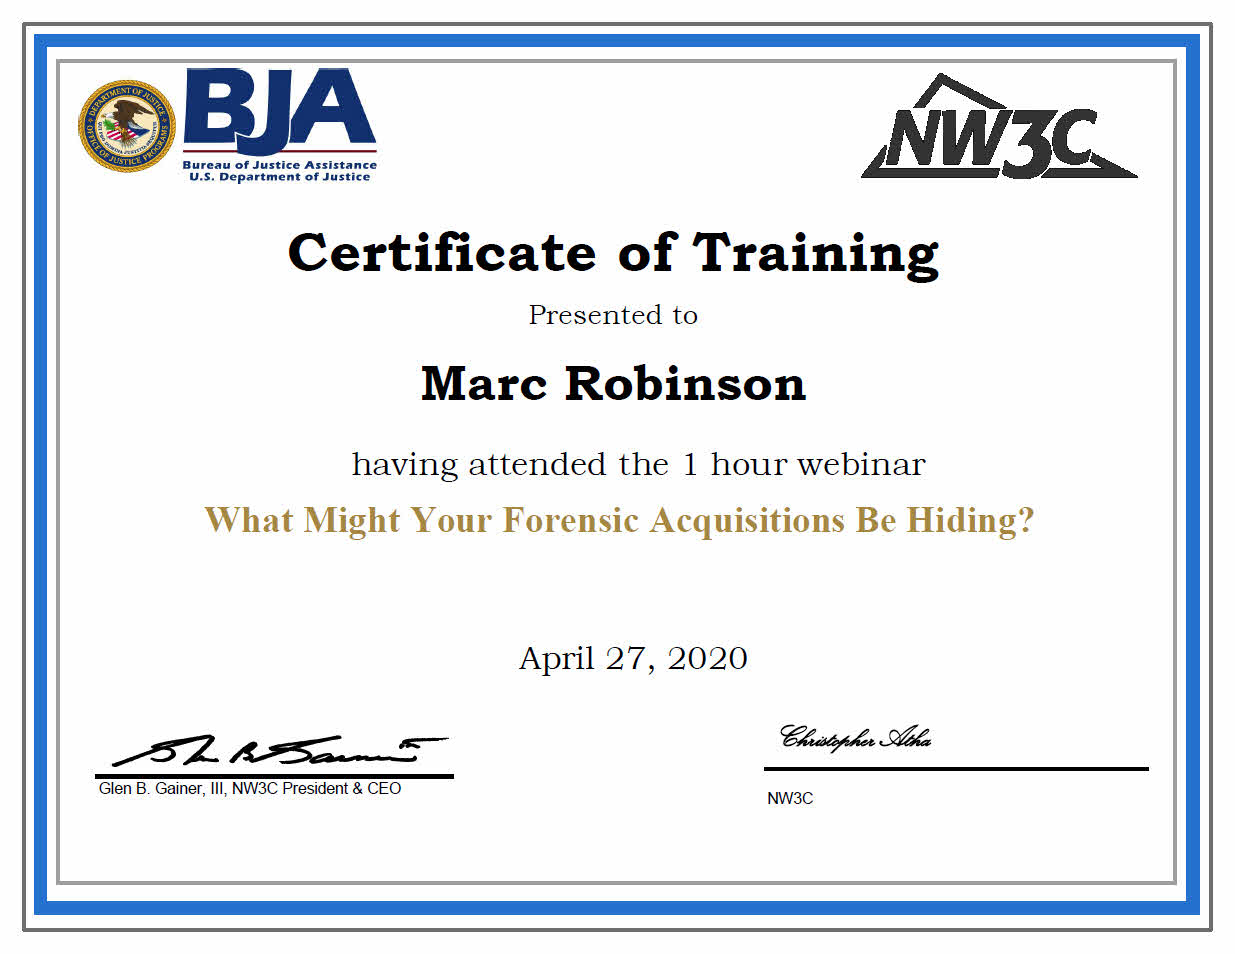 US Department of Justice Training Certificate in Forensic Acquisitions for Marc Robinson